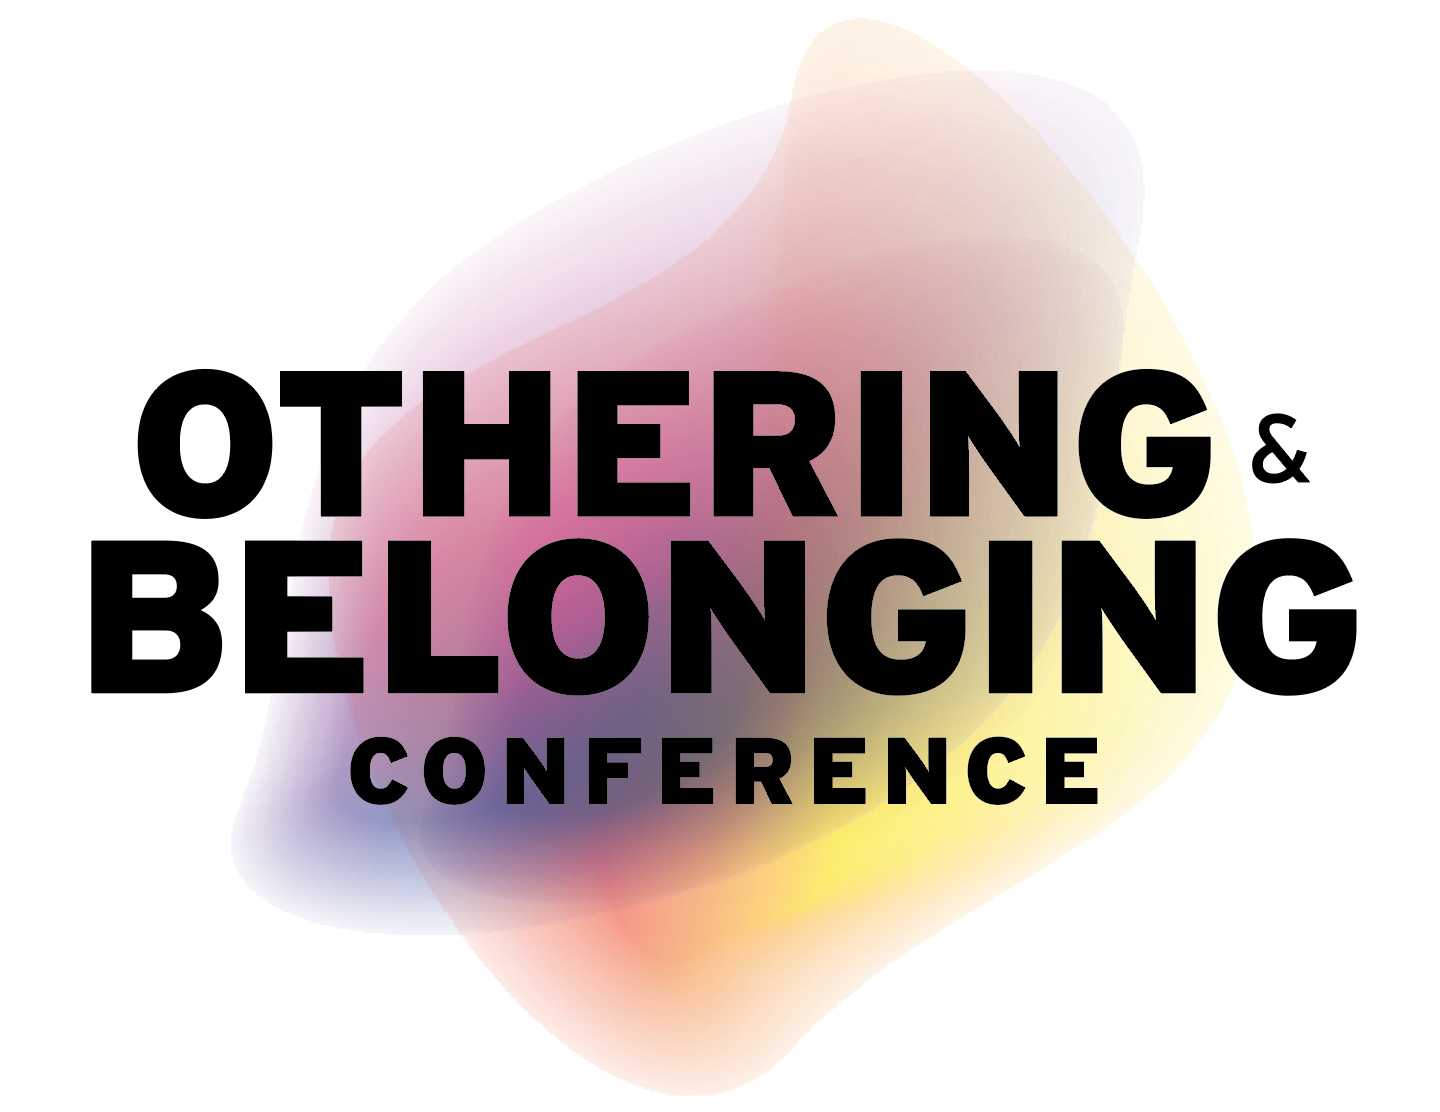 The logo of the Othering & Belonging conference